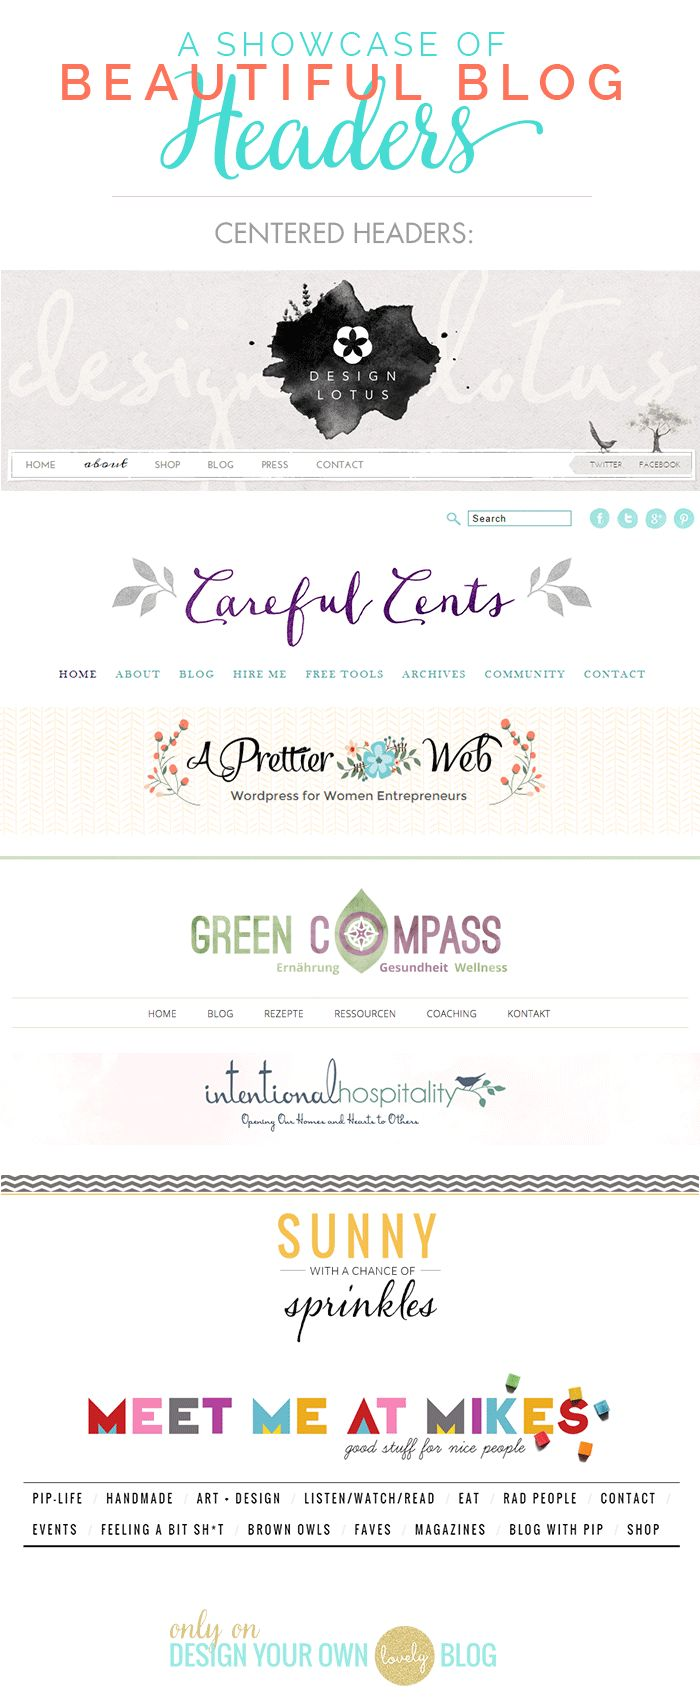 Beautiful blog headers with centered logos. See more blog header inspiration at DesignYourOwnBlog.com.  AMAZING